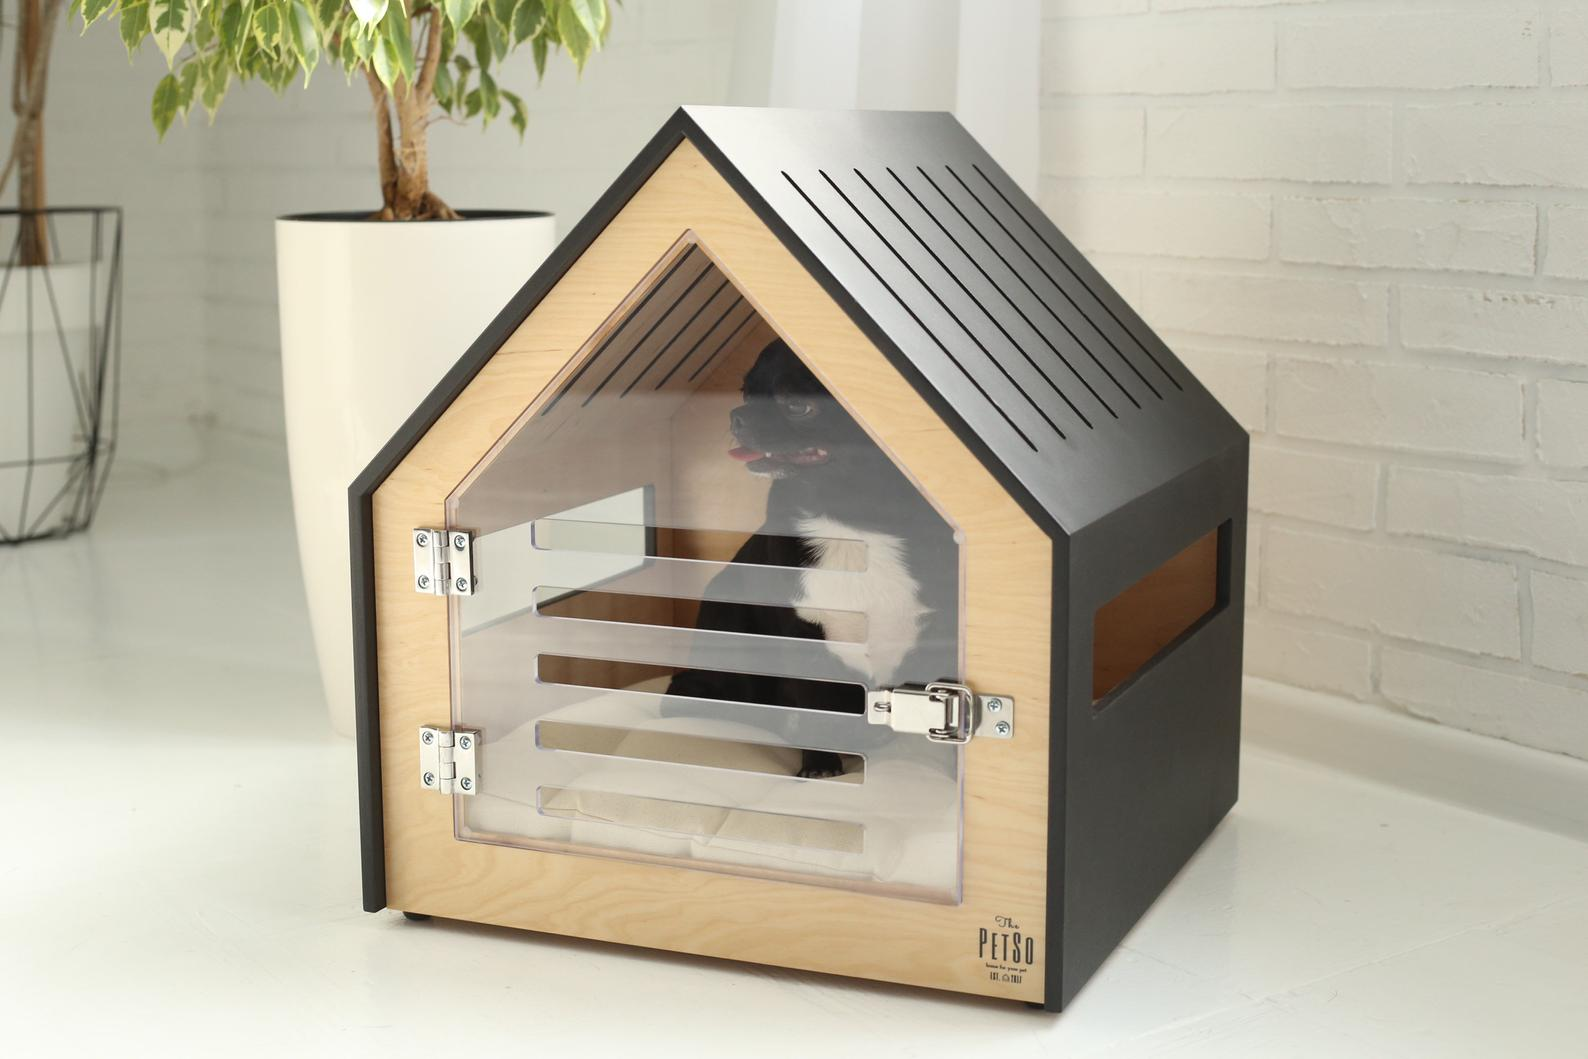 20+ Attractive Dog Crate Options for Modern Pups - feat. PetSo Modern Dog or Cat House with Acrylic Door via Nice People Workshop (Etsy)